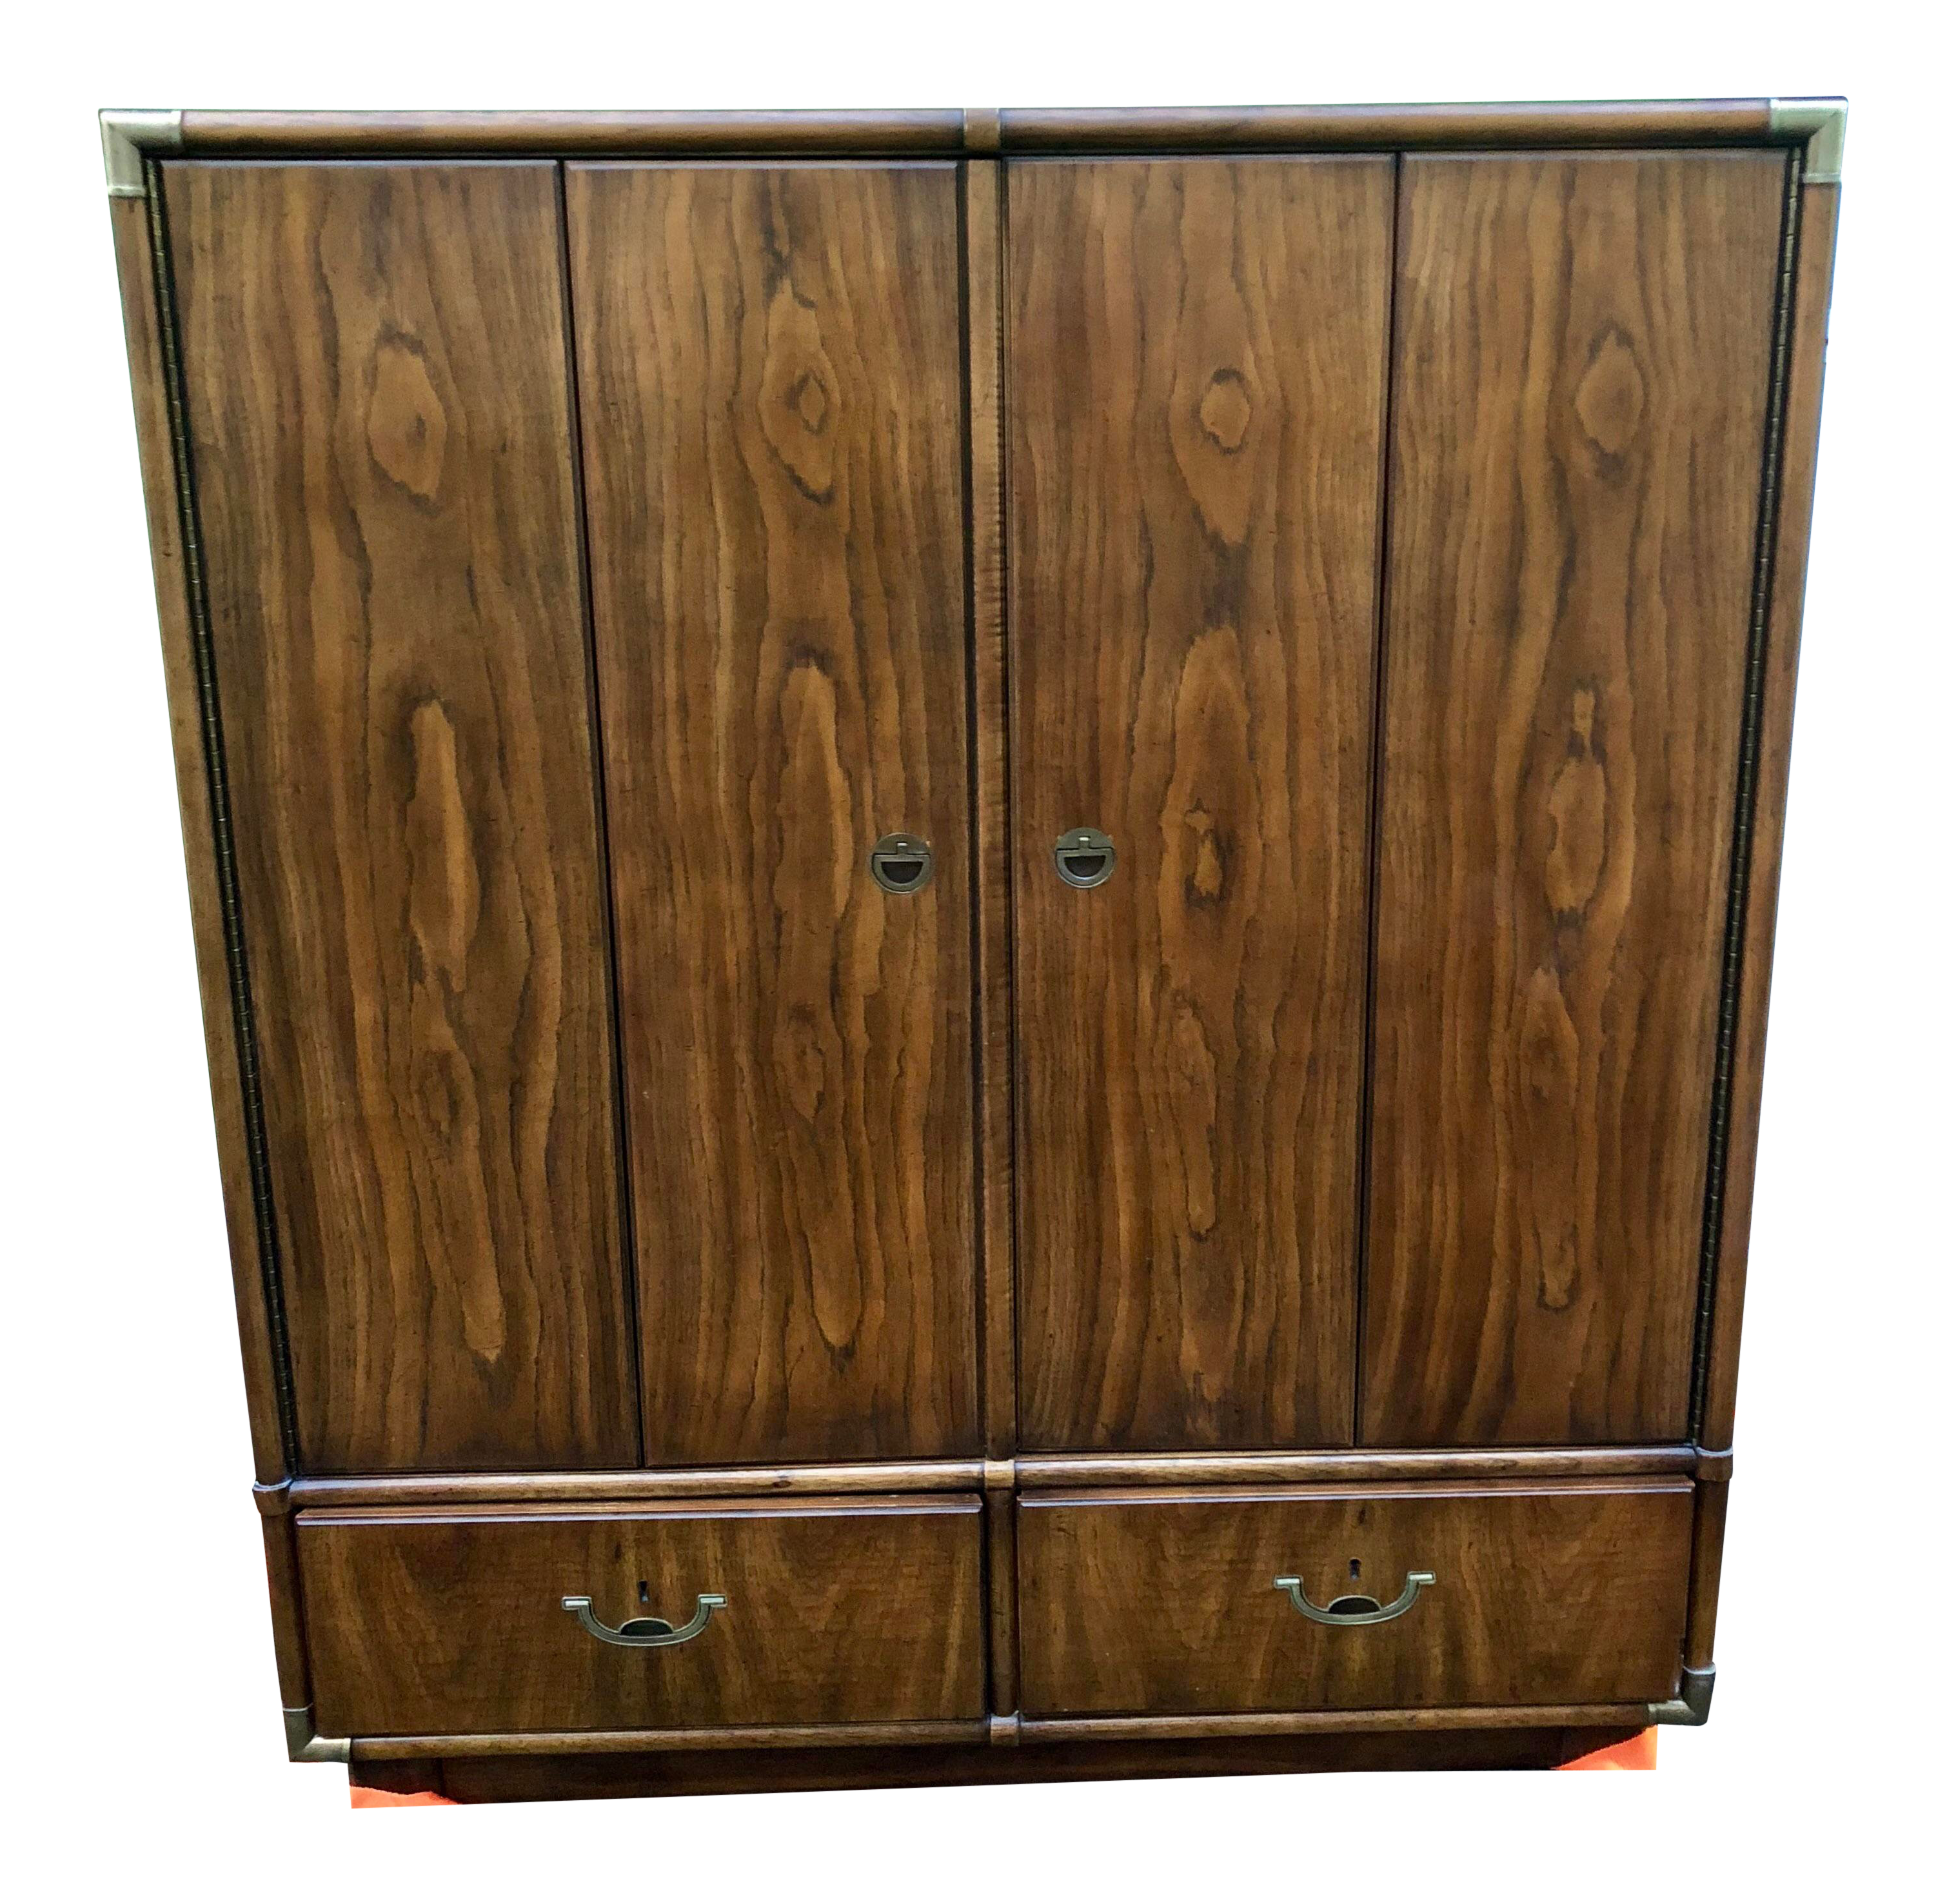 1976 Drexel Heritage Accolade Highboy Armoire